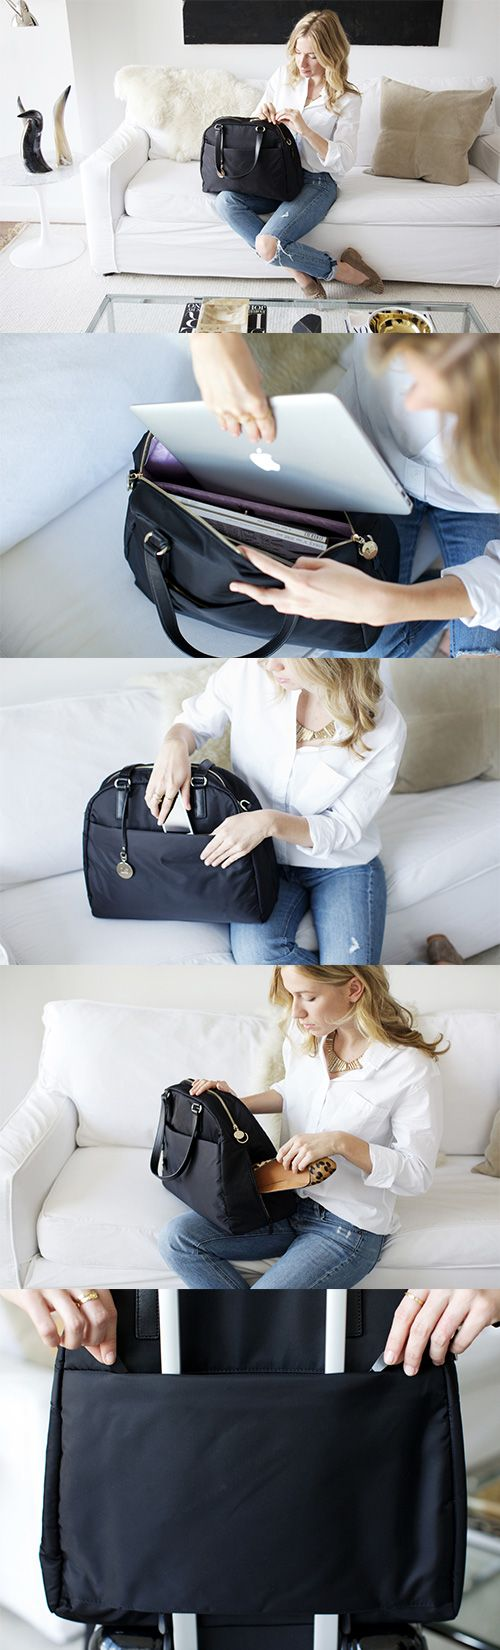 """The OMG"" - lightweight travel bag, tech friendly laptop tote, and stylish gym bag. Designed by Lo & Sons #loandsons"